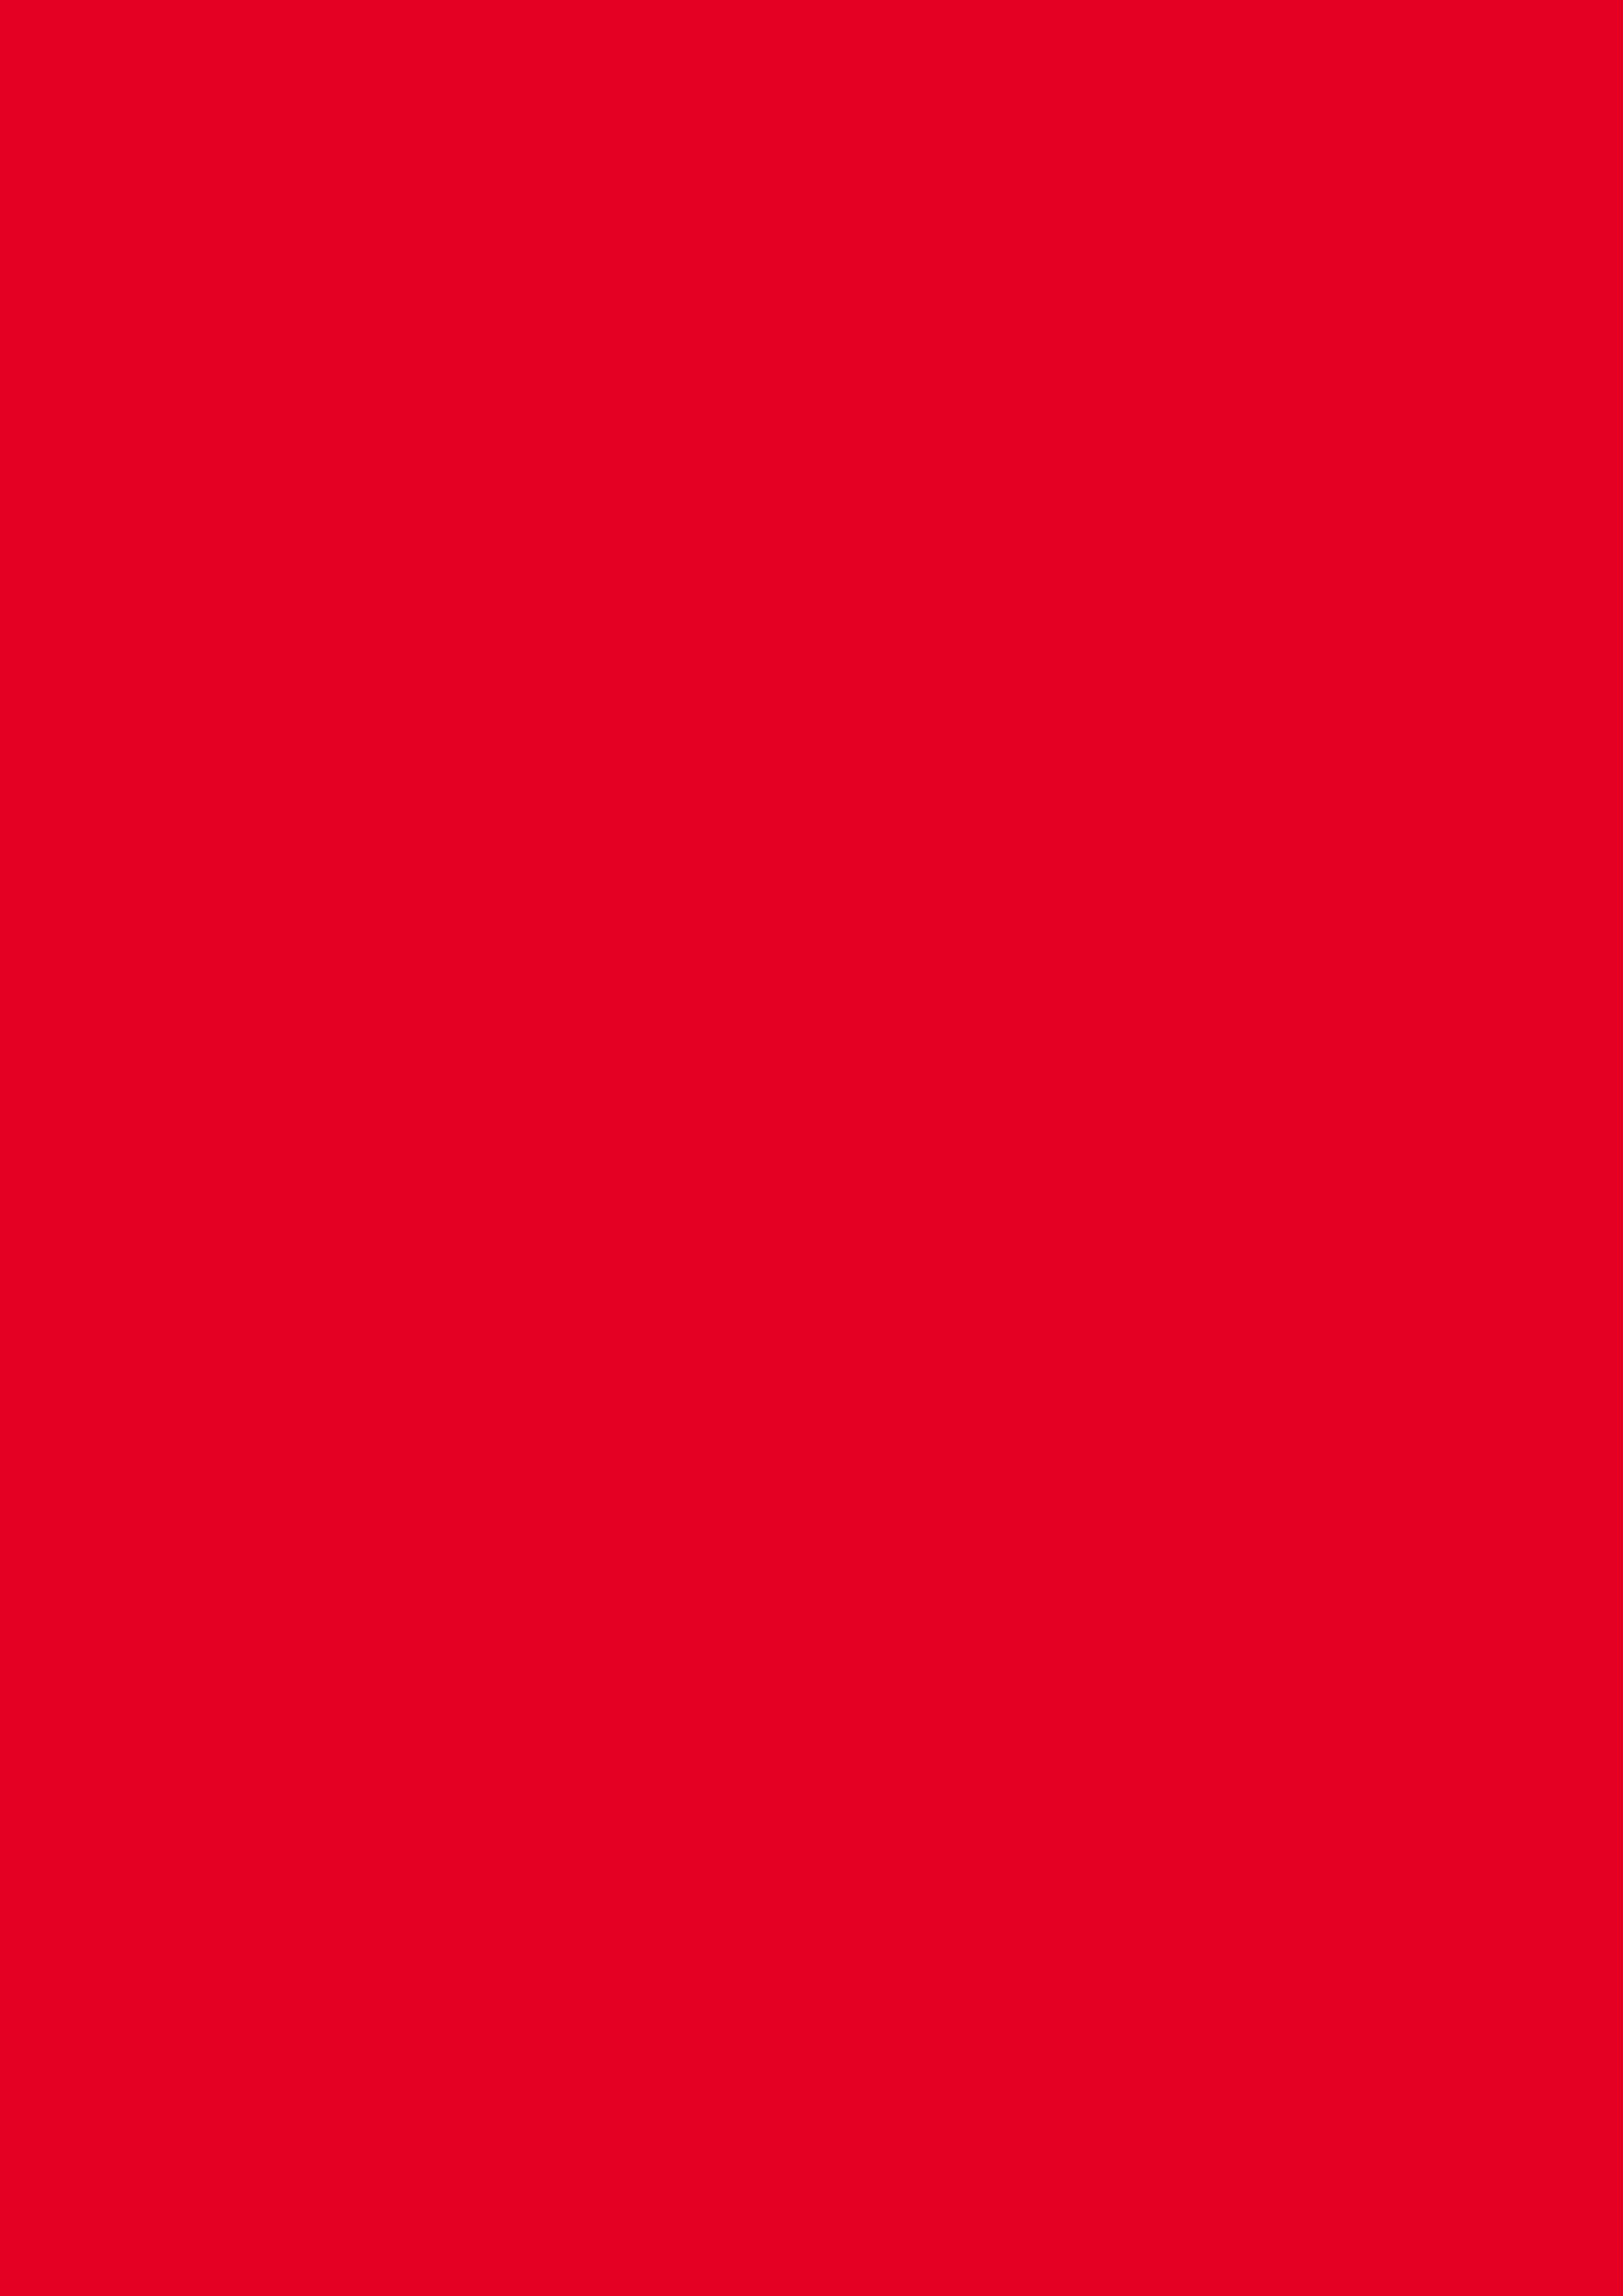 2480x3508 Cadmium Red Solid Color Background